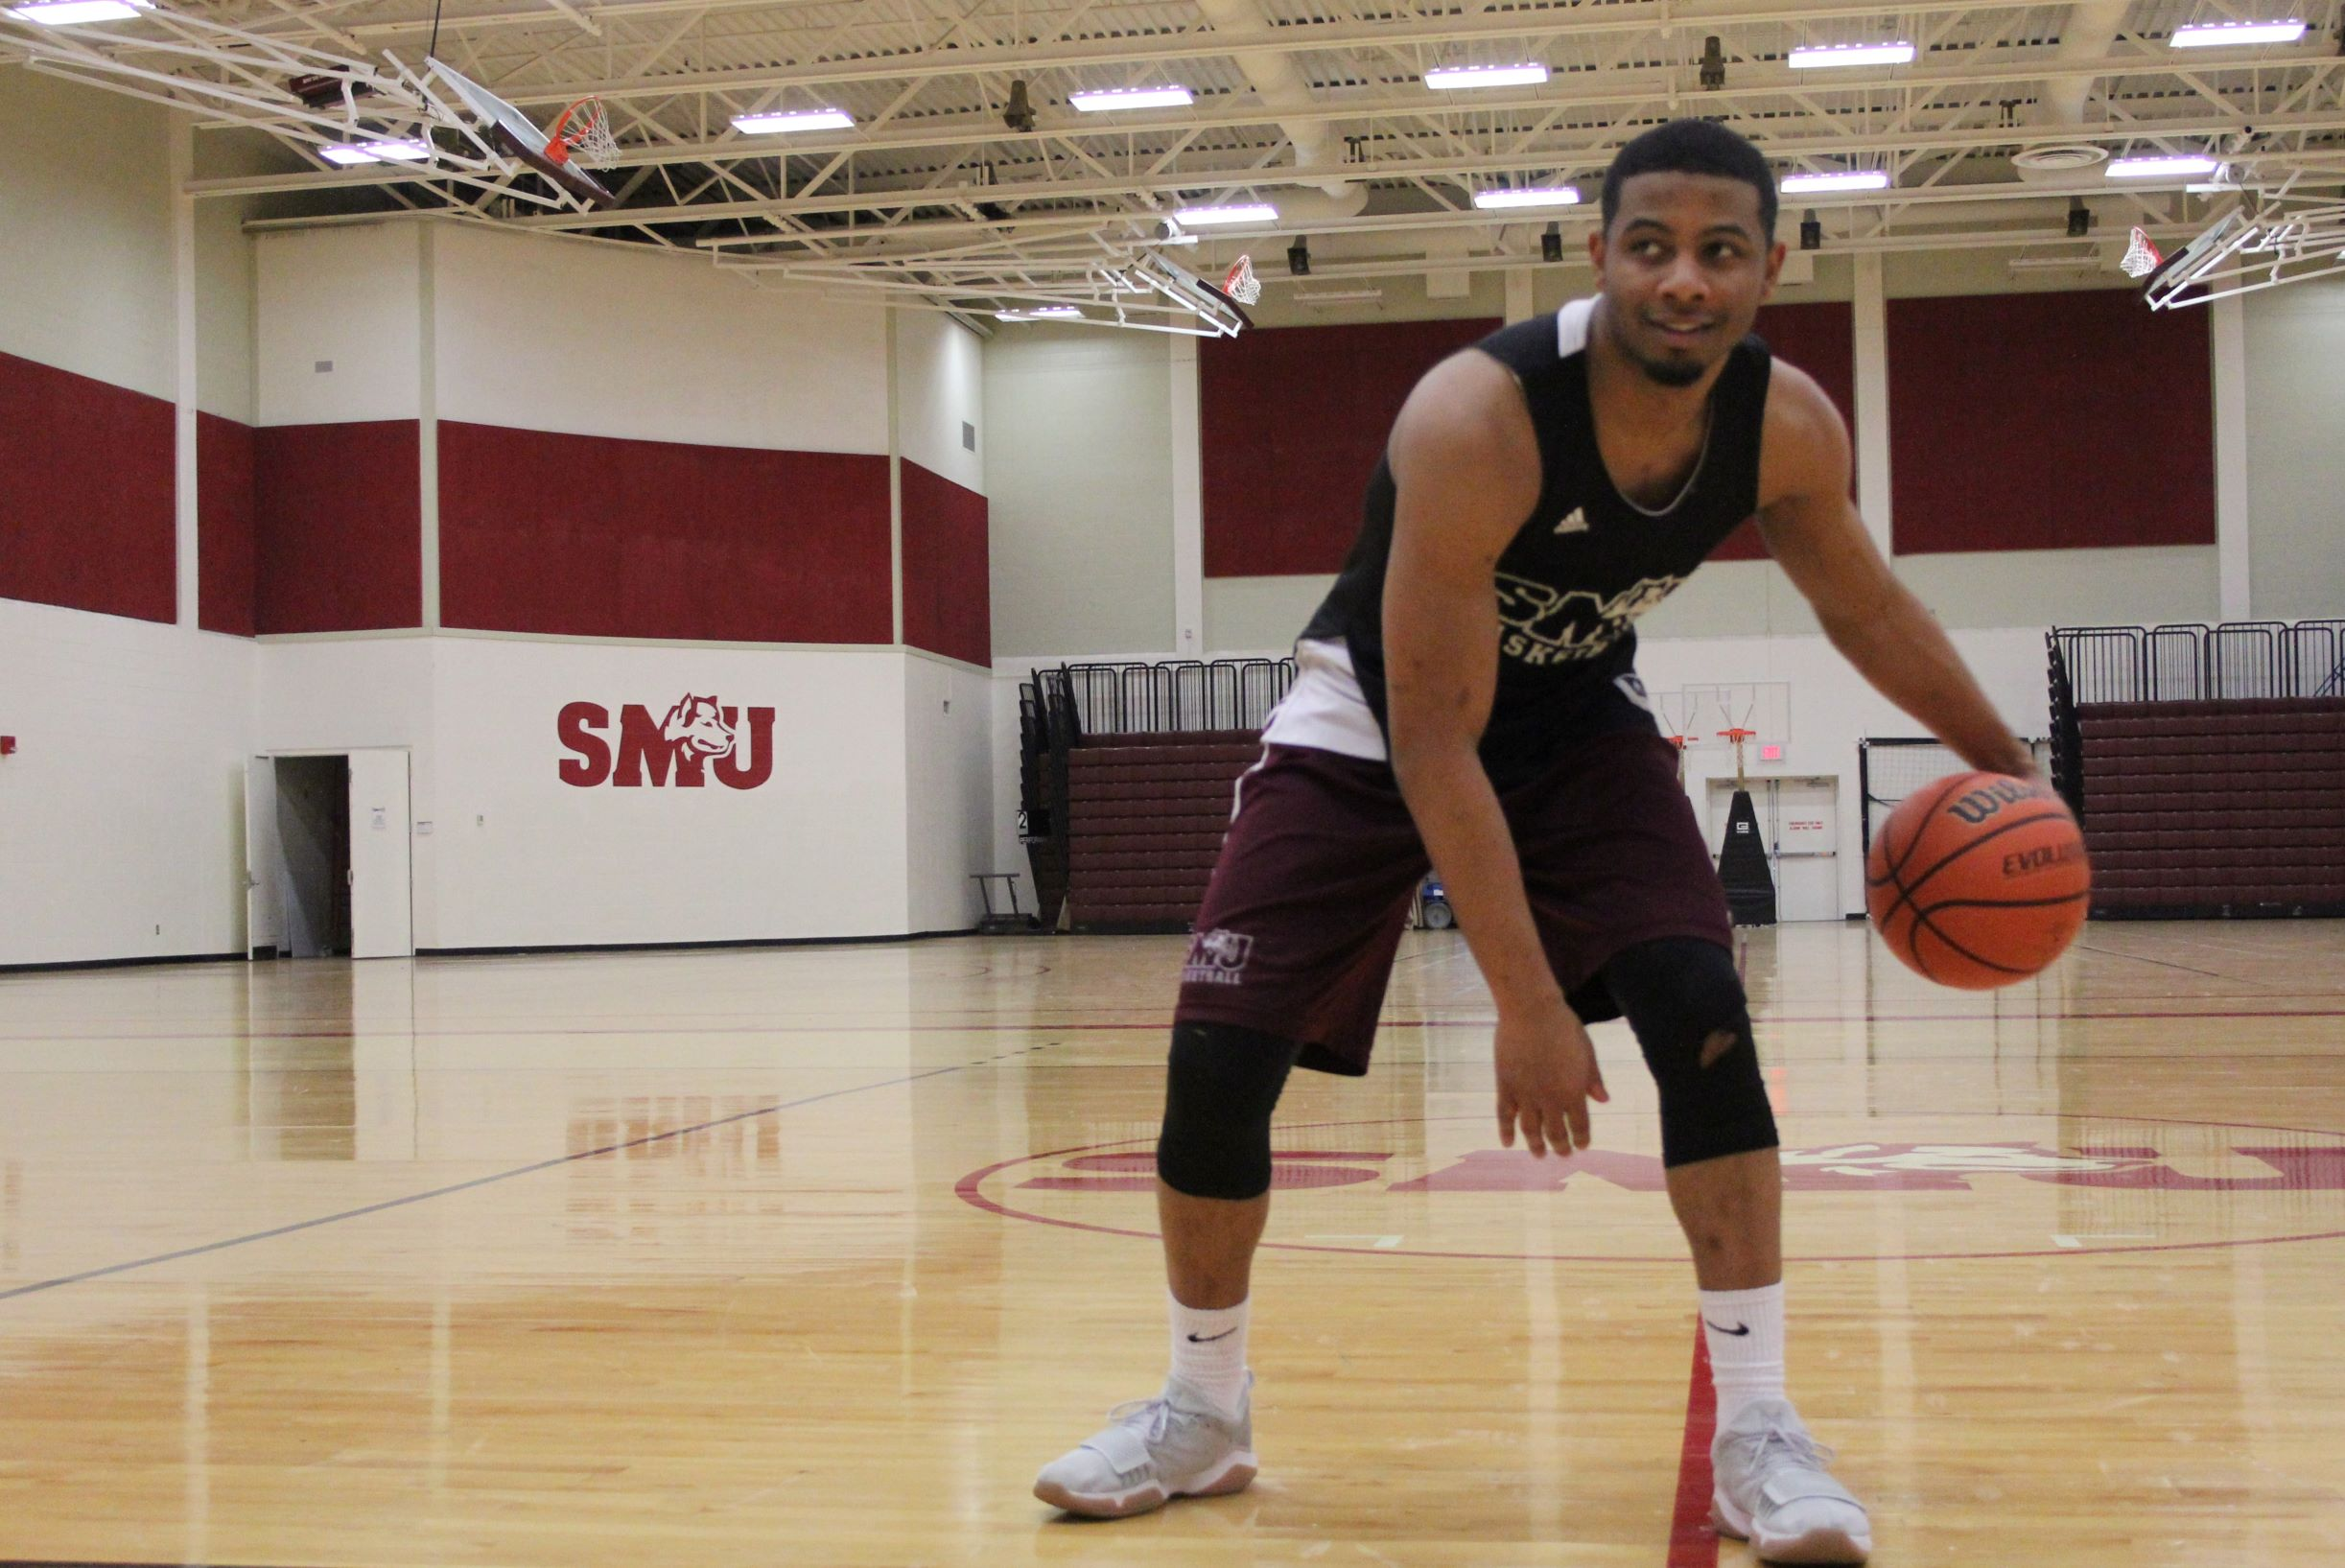 Co-captain and AUS first team all-star Kemar Alleyne on his home court in Saint Mary's University.